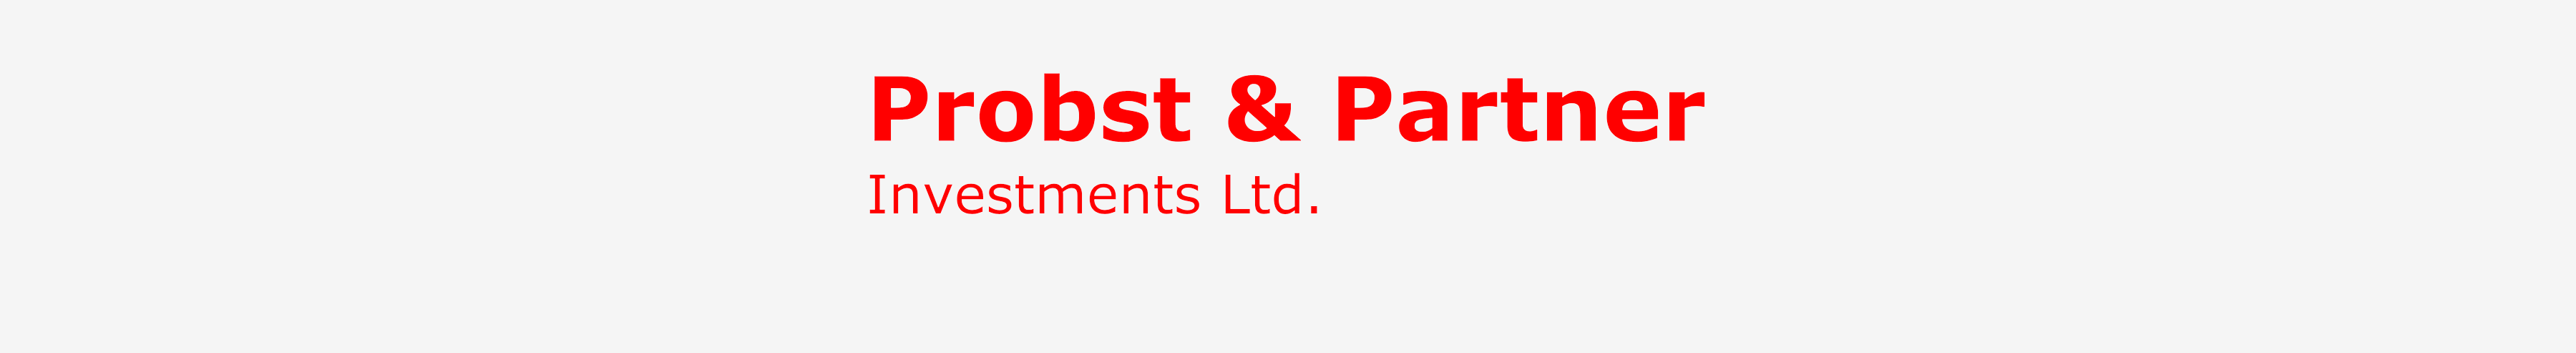 Probst & Partner, Investments Ltd.